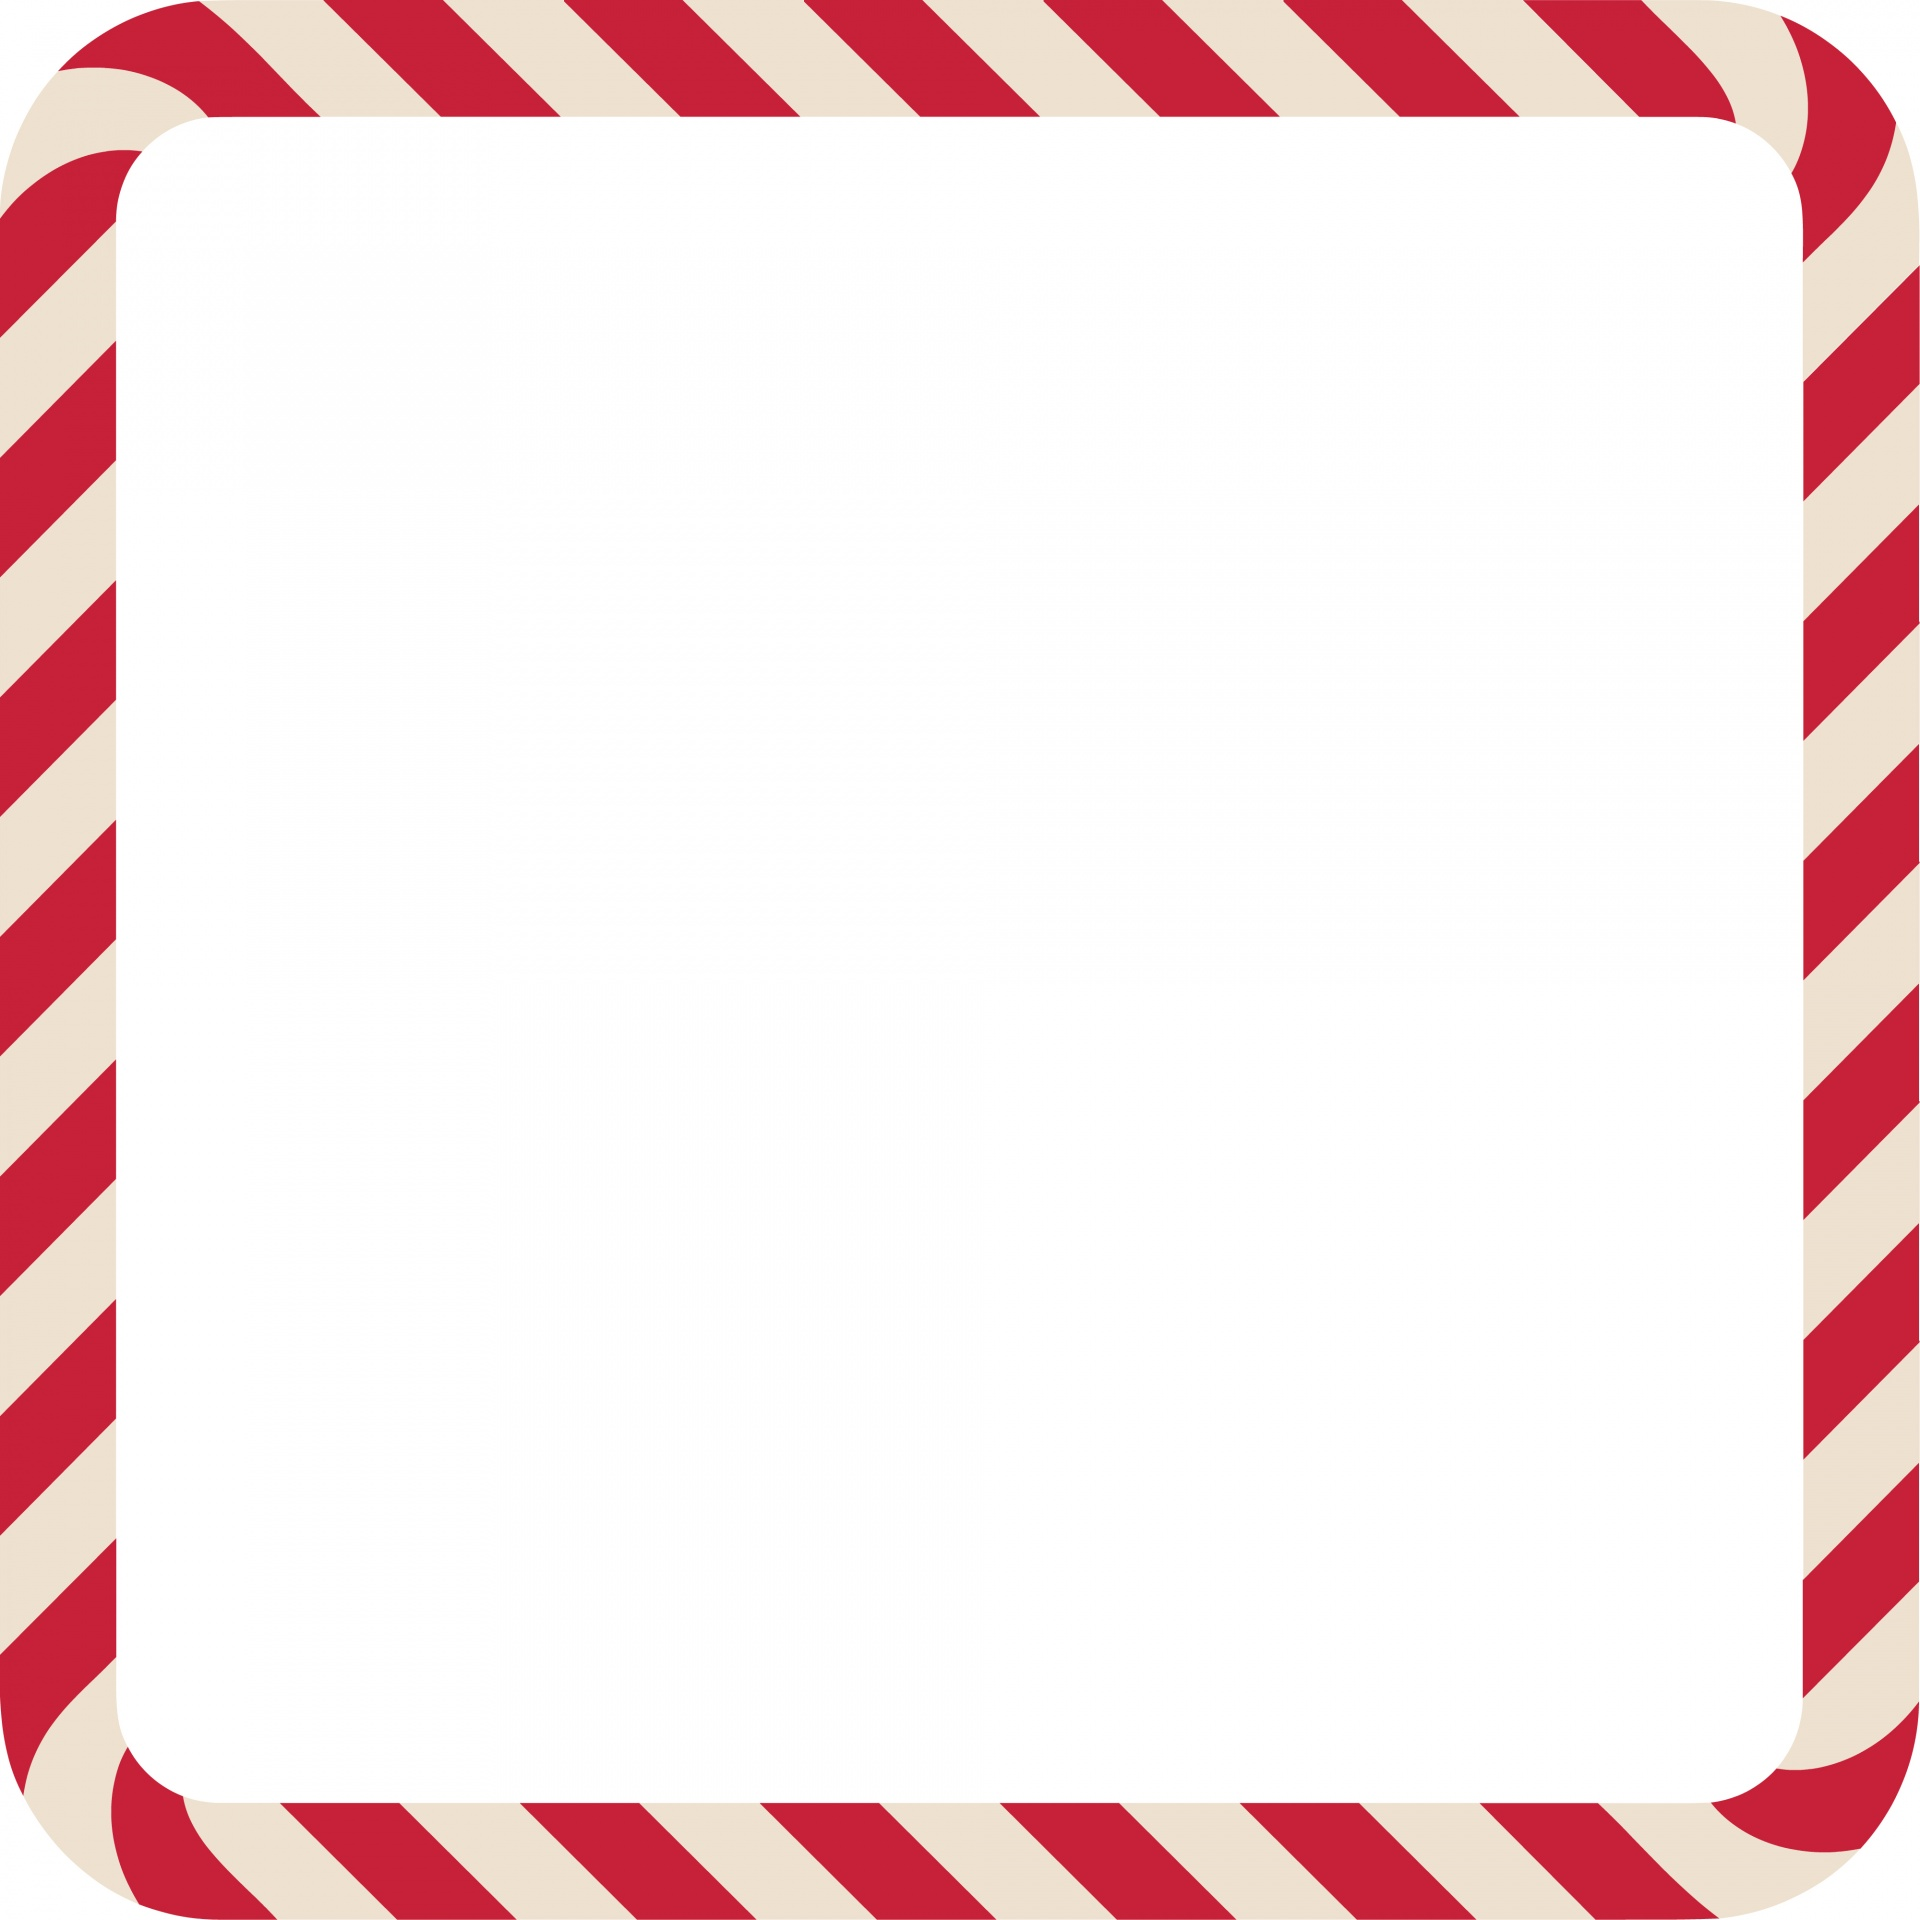 Candy Cane Frame Square Free Stock Photo